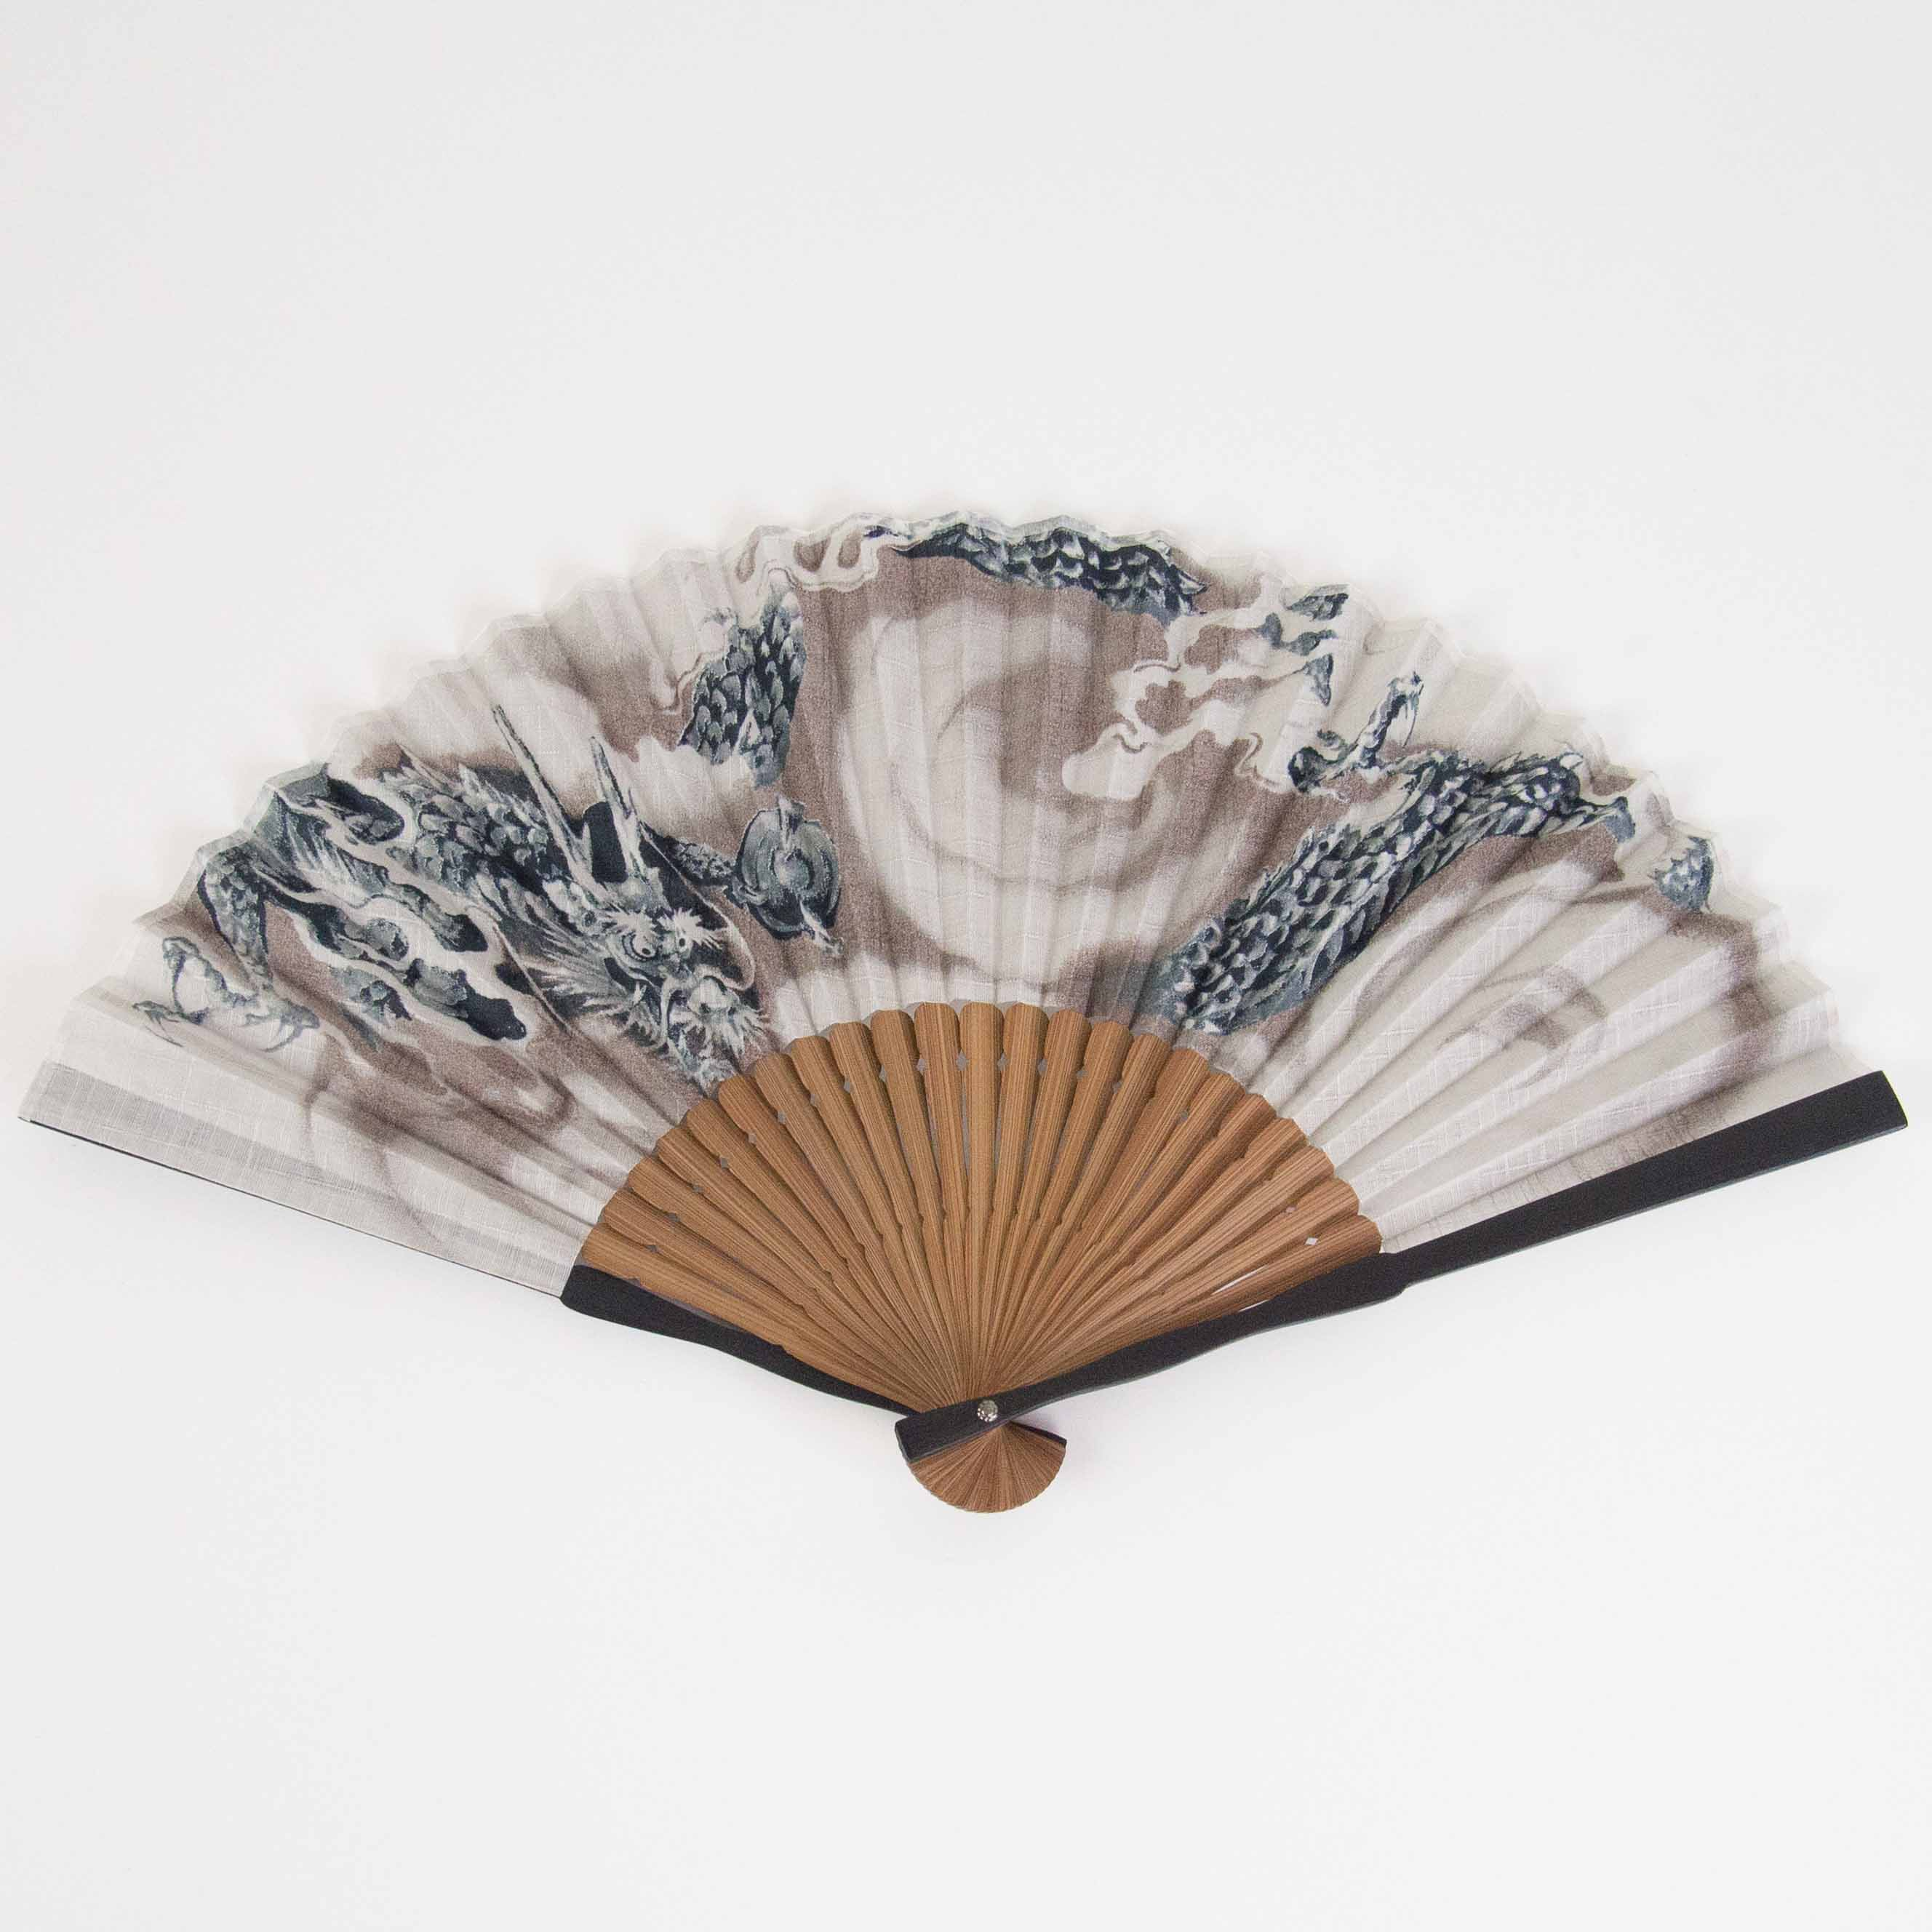 Dragon Folding Fan